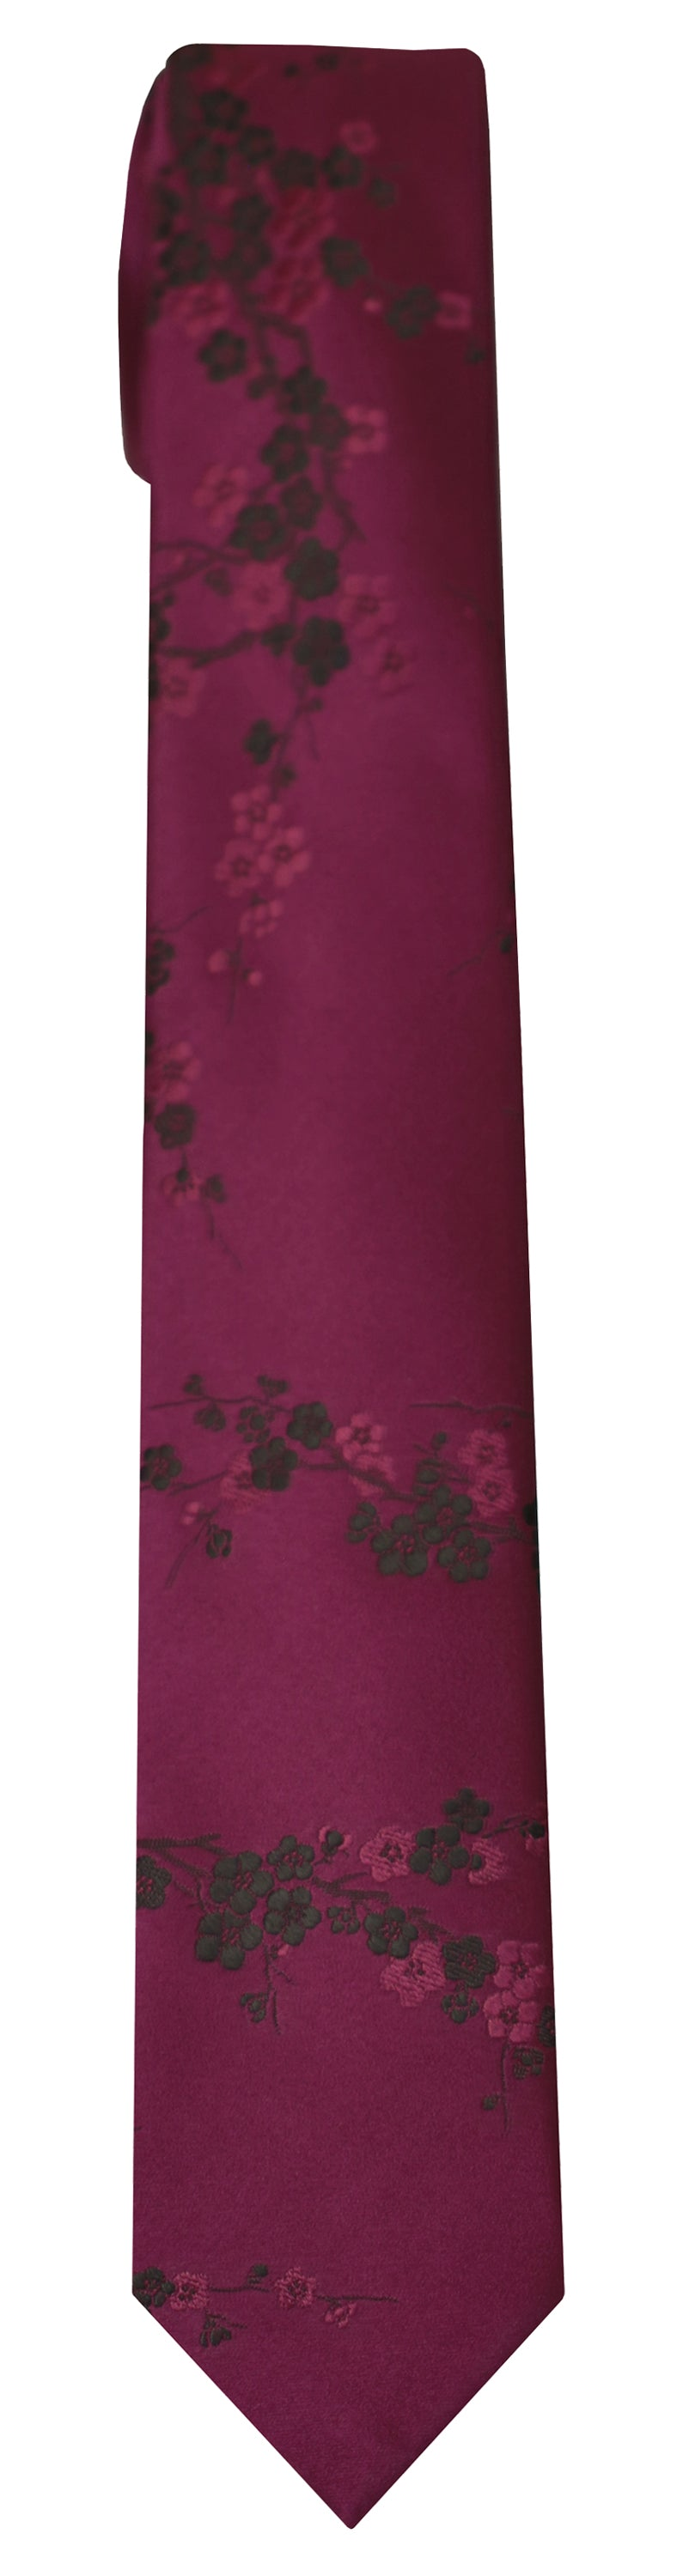 Mimi Fong Cherry Blossoms Tie in Plum